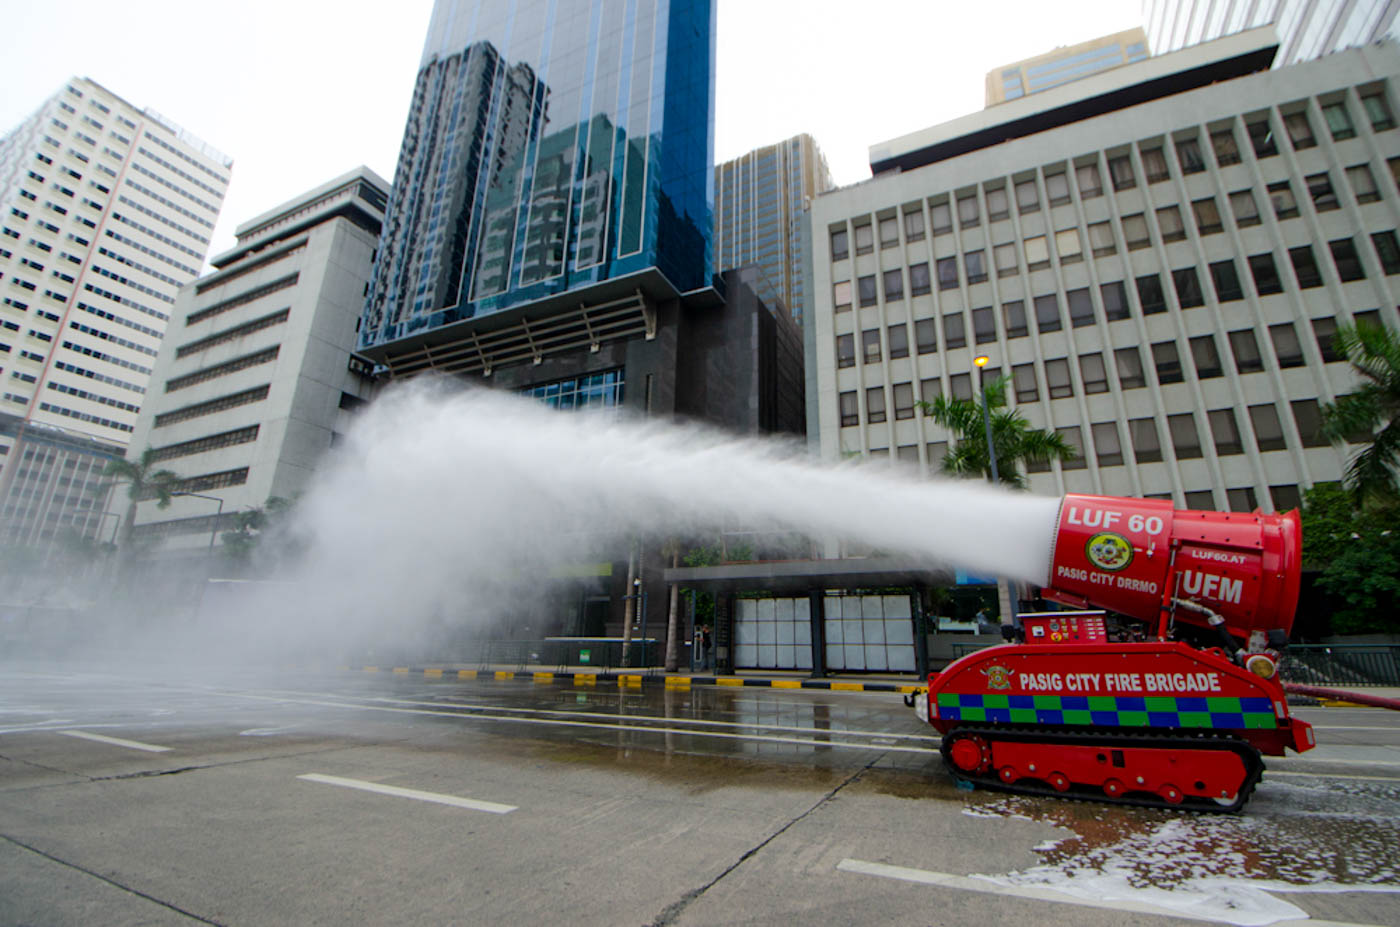 MMSHAKEDRILL. LUF60 unmanned fire fighting machine being used during the #MMShakeDrill in Ortigas Center, Pasig City. Photo by Rob Reyes/Rappler